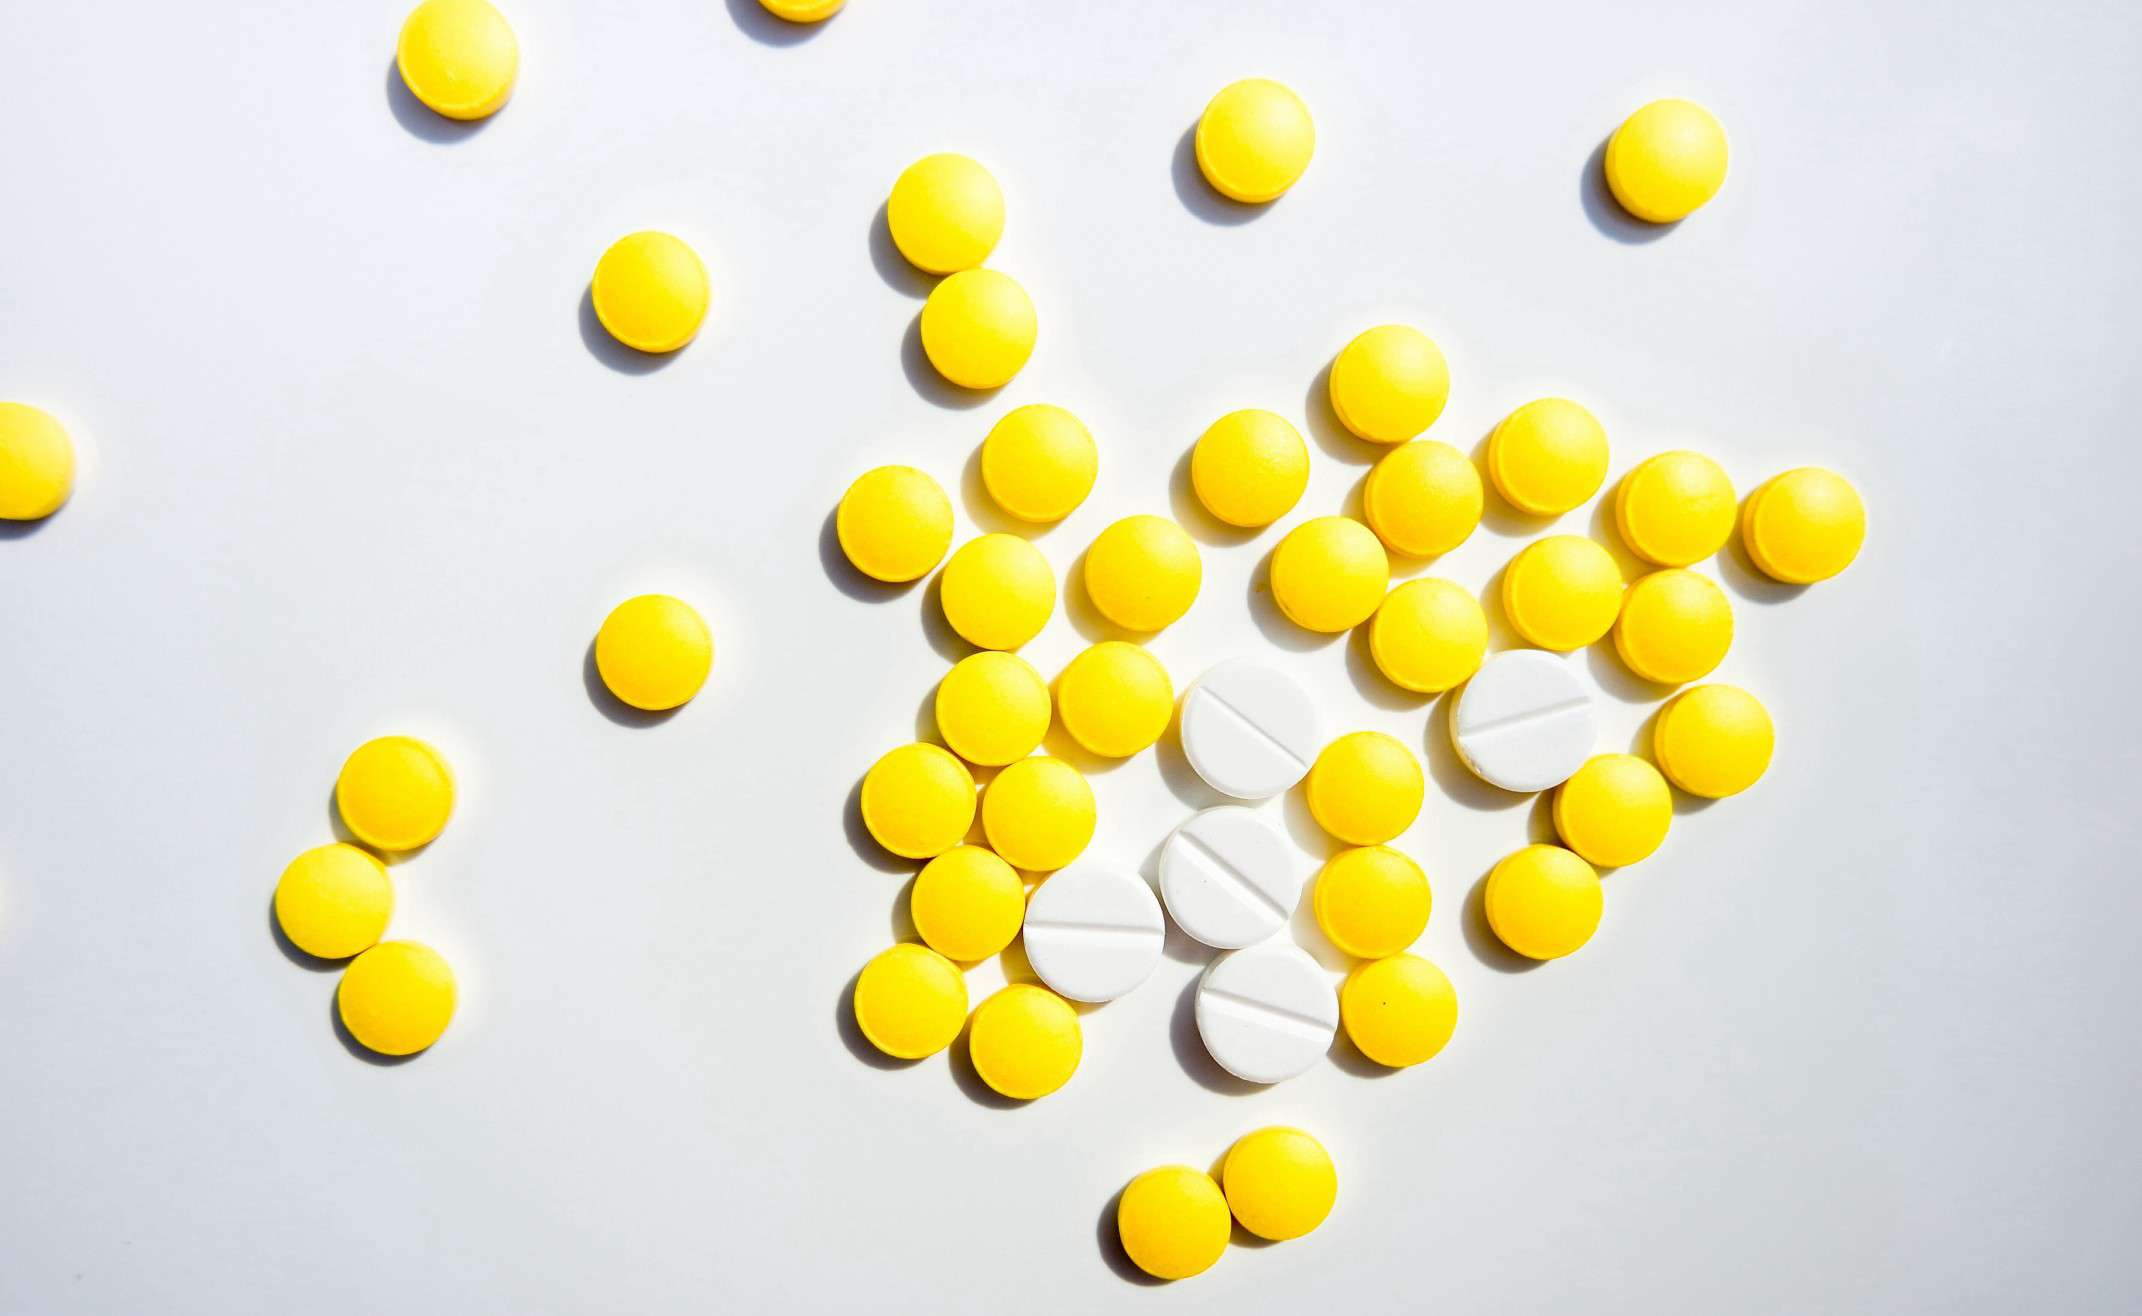 Yellow and white pills on a white background